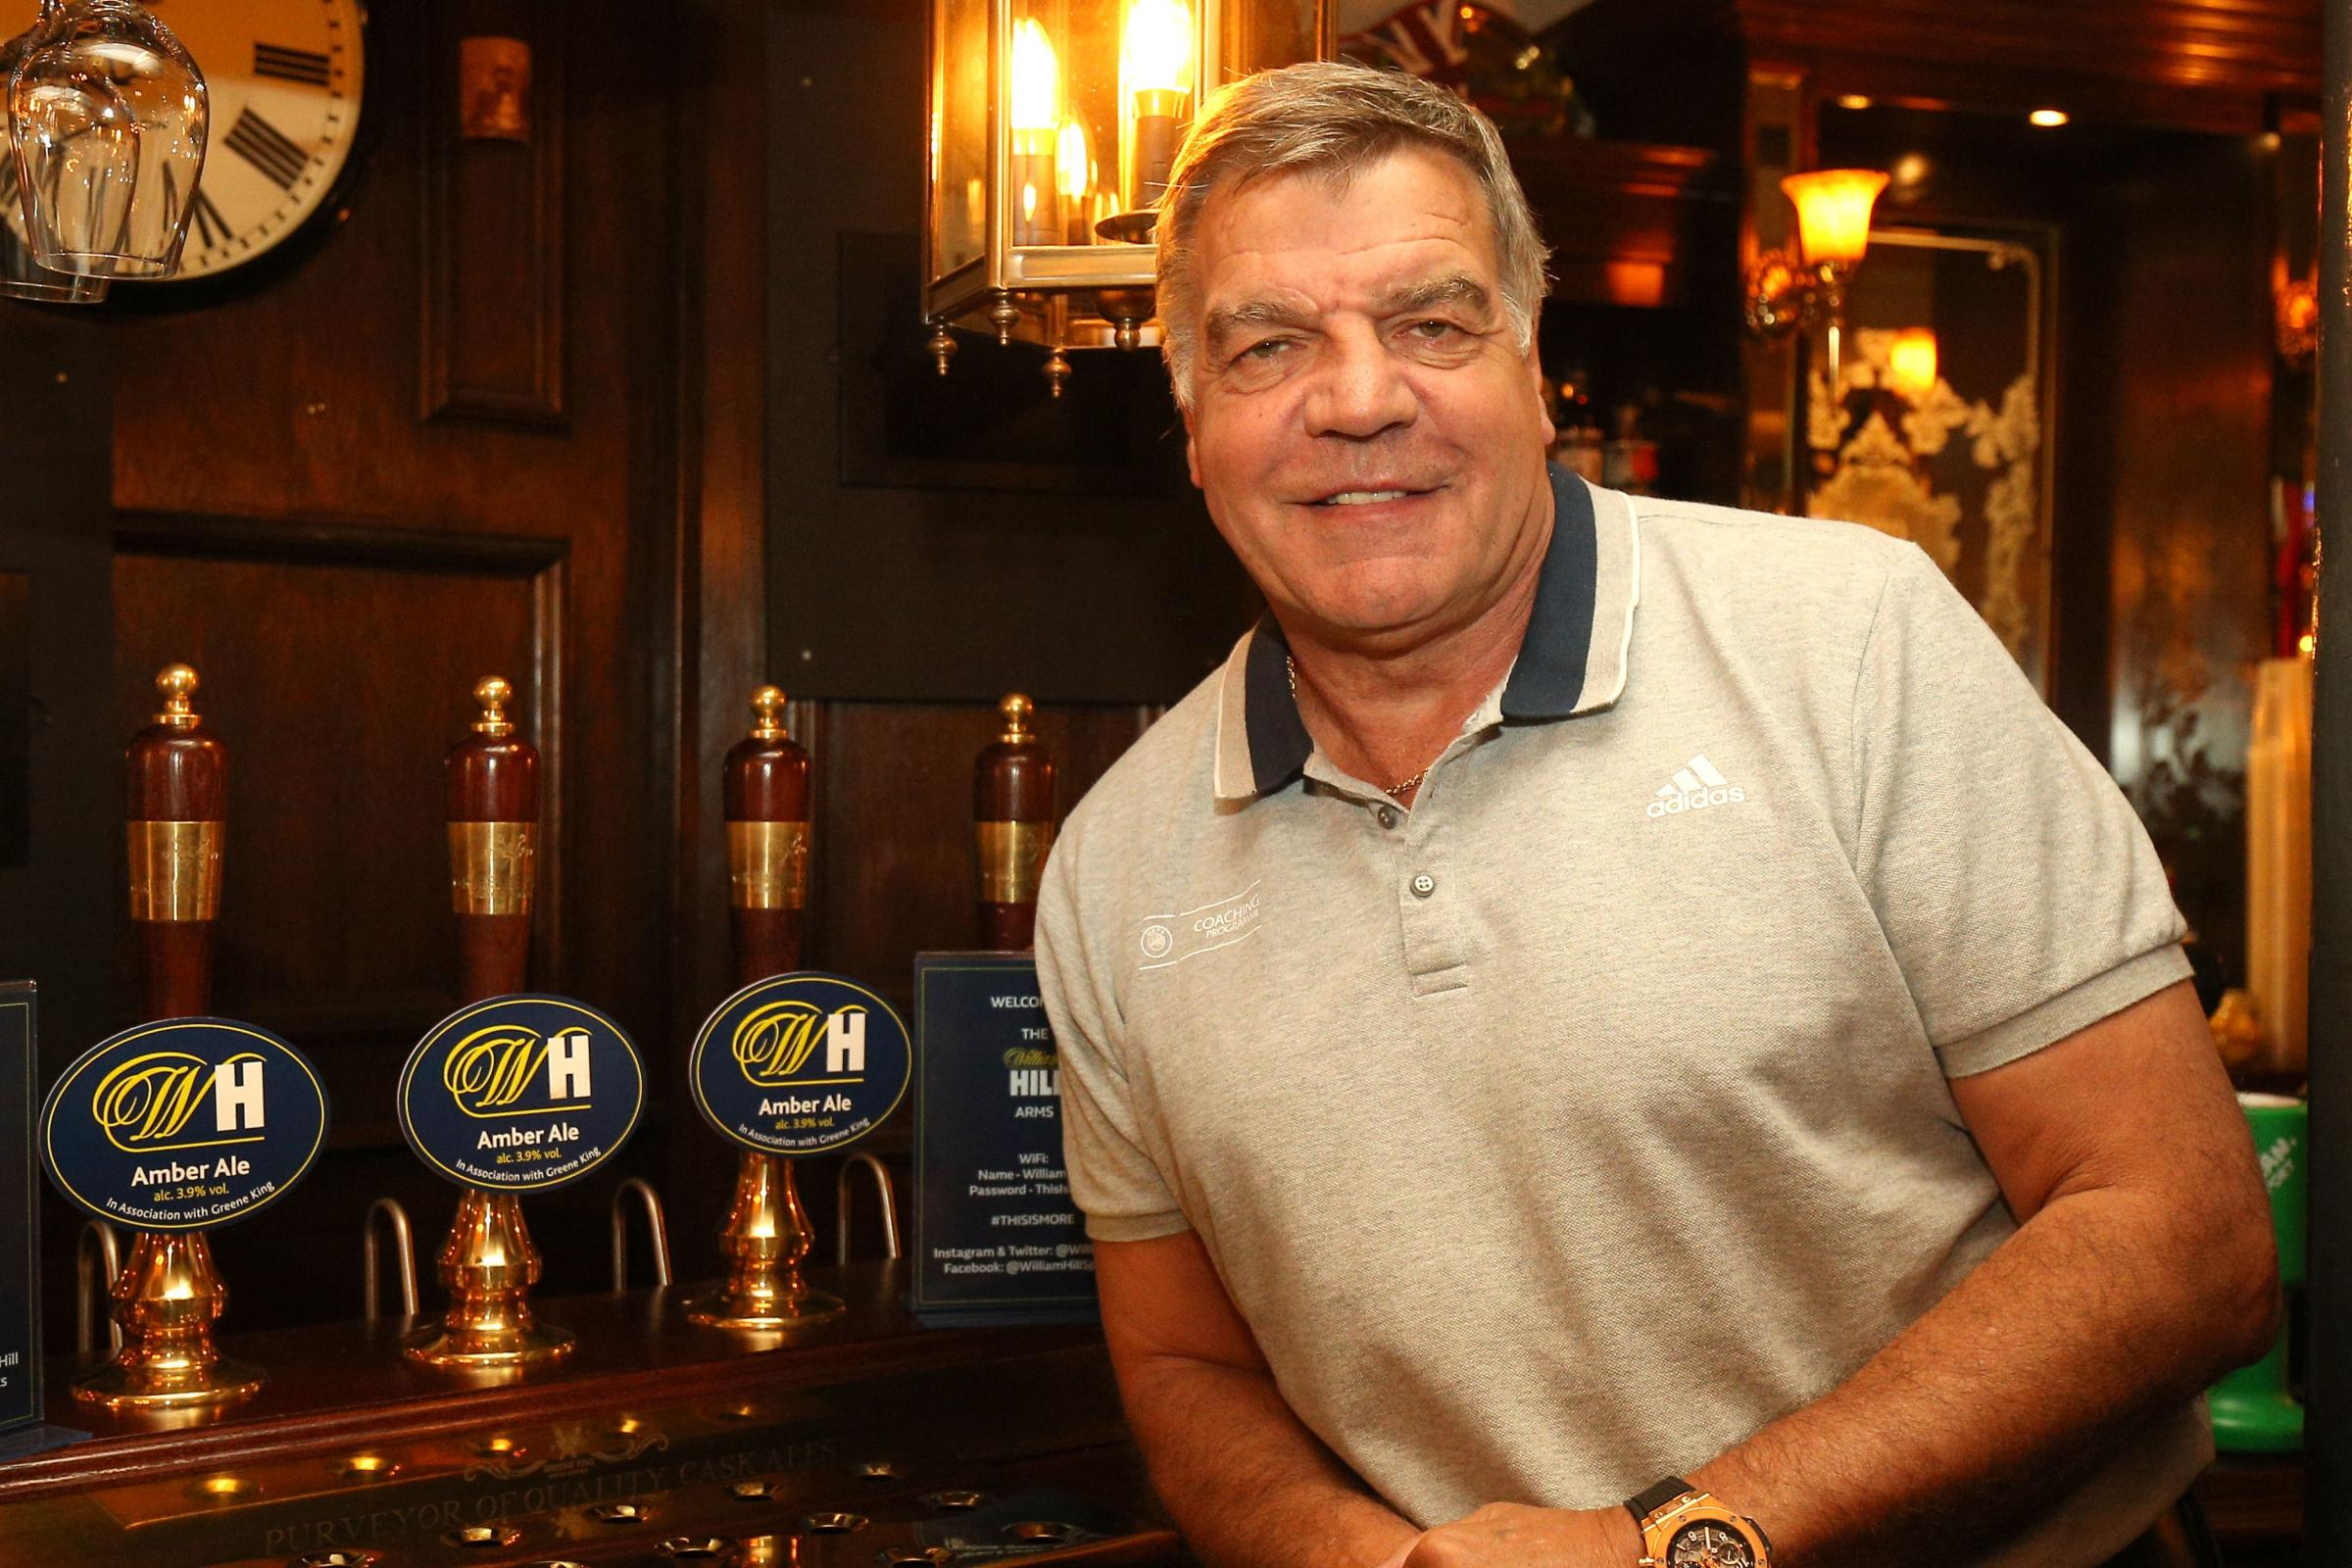 Sam Allardyce at the Lord Raglan pub in London